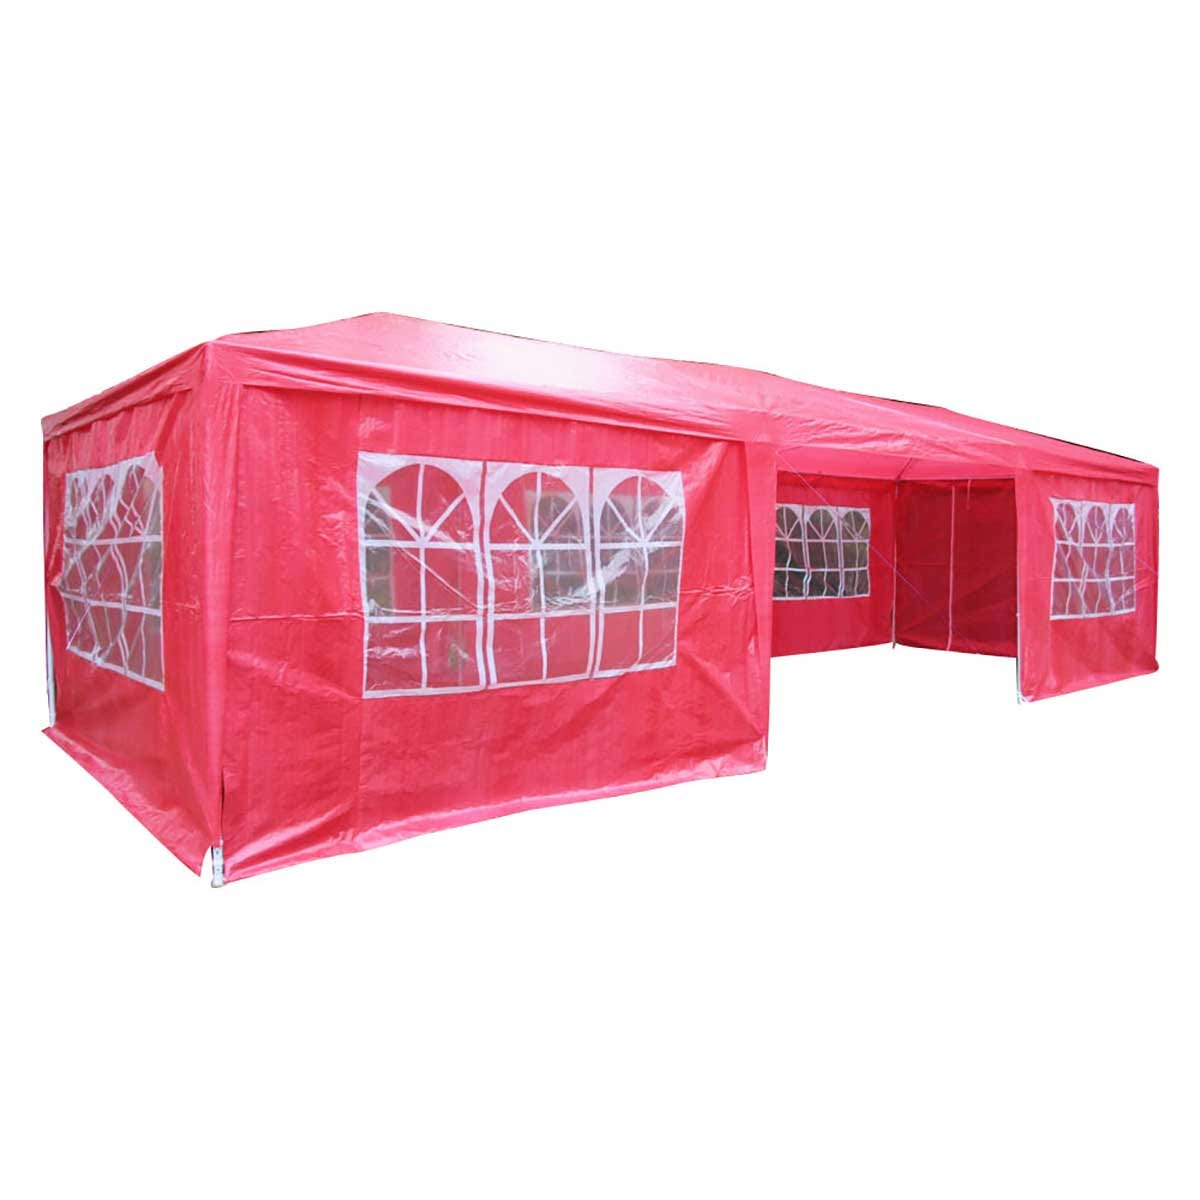 Airwave 9m x 3m Value Party Tent Gazebo - Red